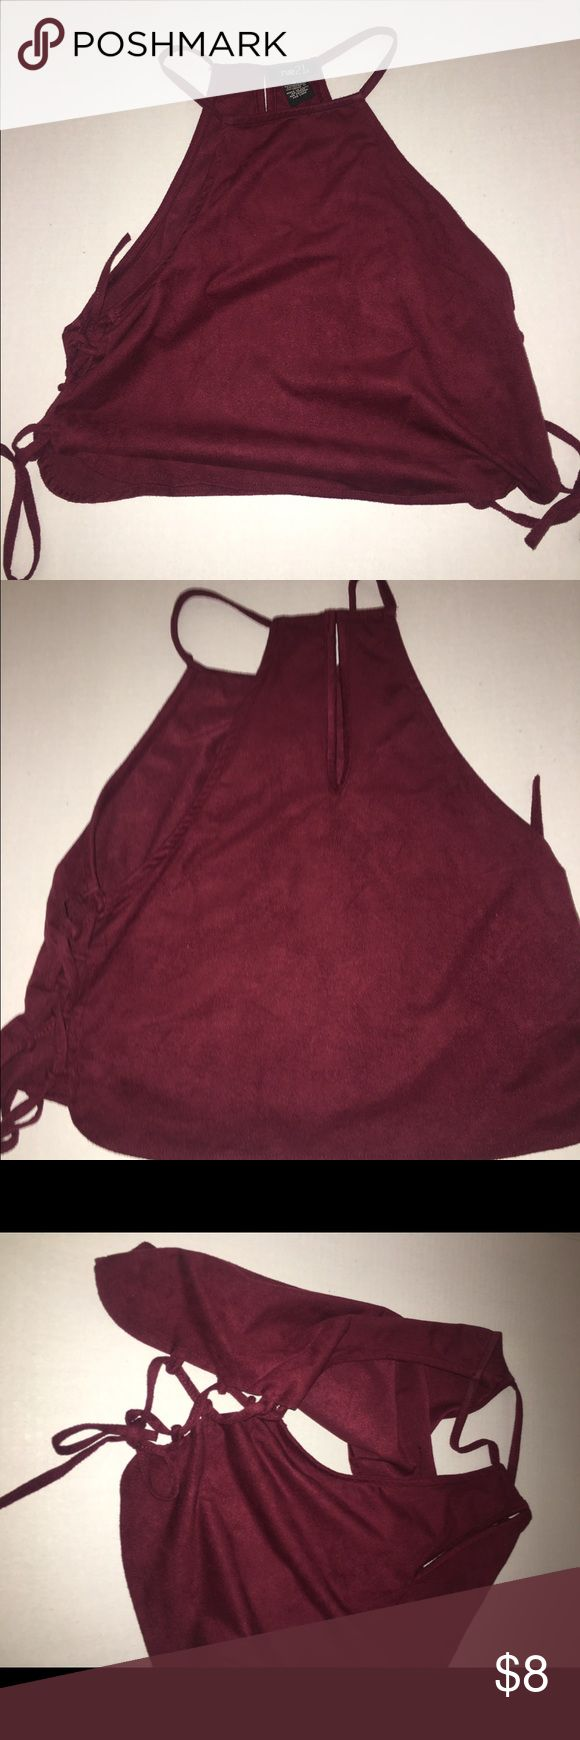 Rue 21 burgundy halter top Rue 21 Burgundy halter top tied up sides Rue 21 Tops Crop Tops